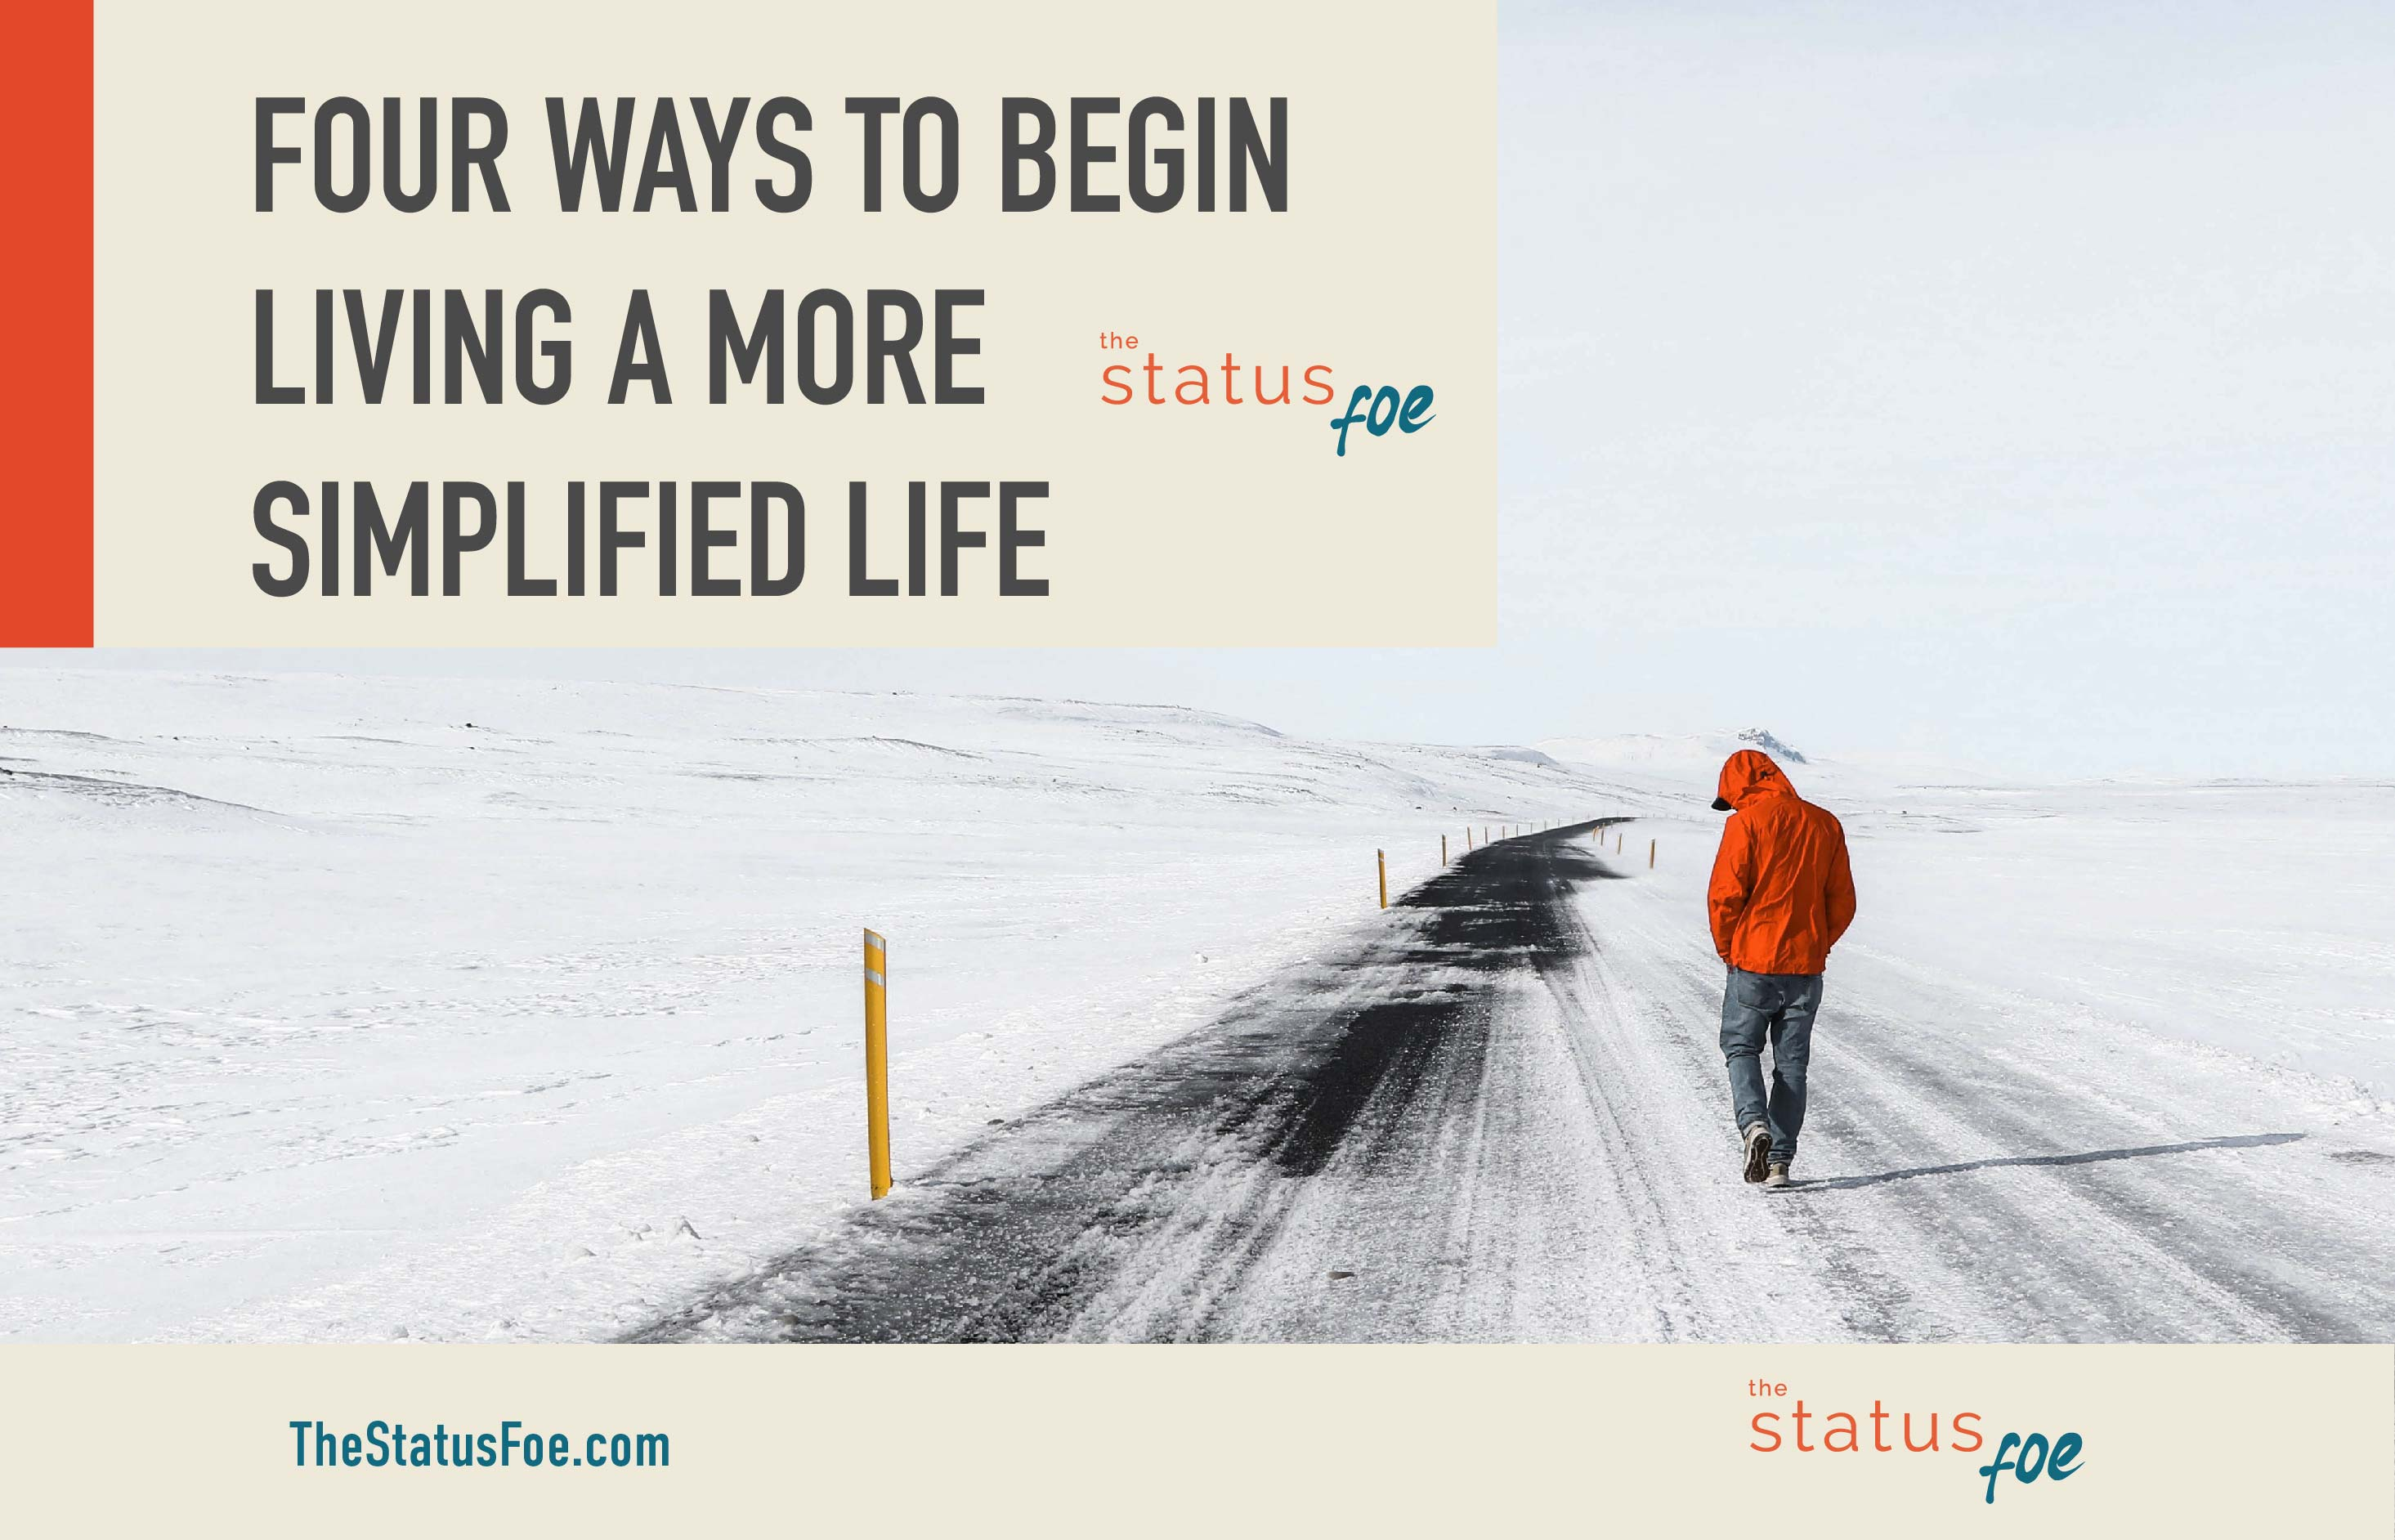 Four Ways to Begin Living a More Simplified Life